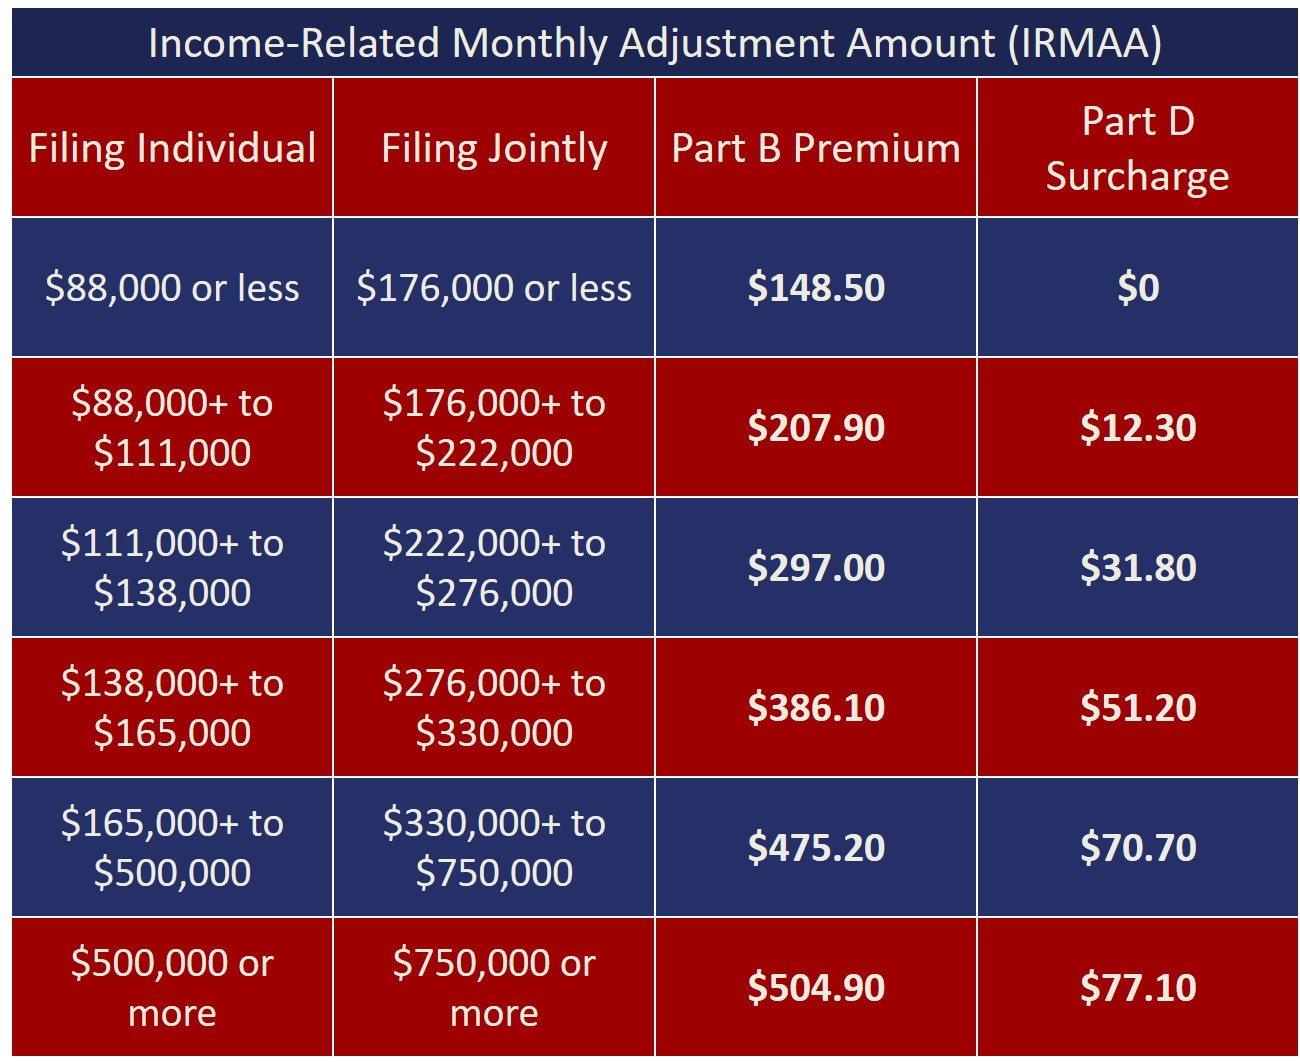 Income-Related Monthly Adjustment Amount IRMAA